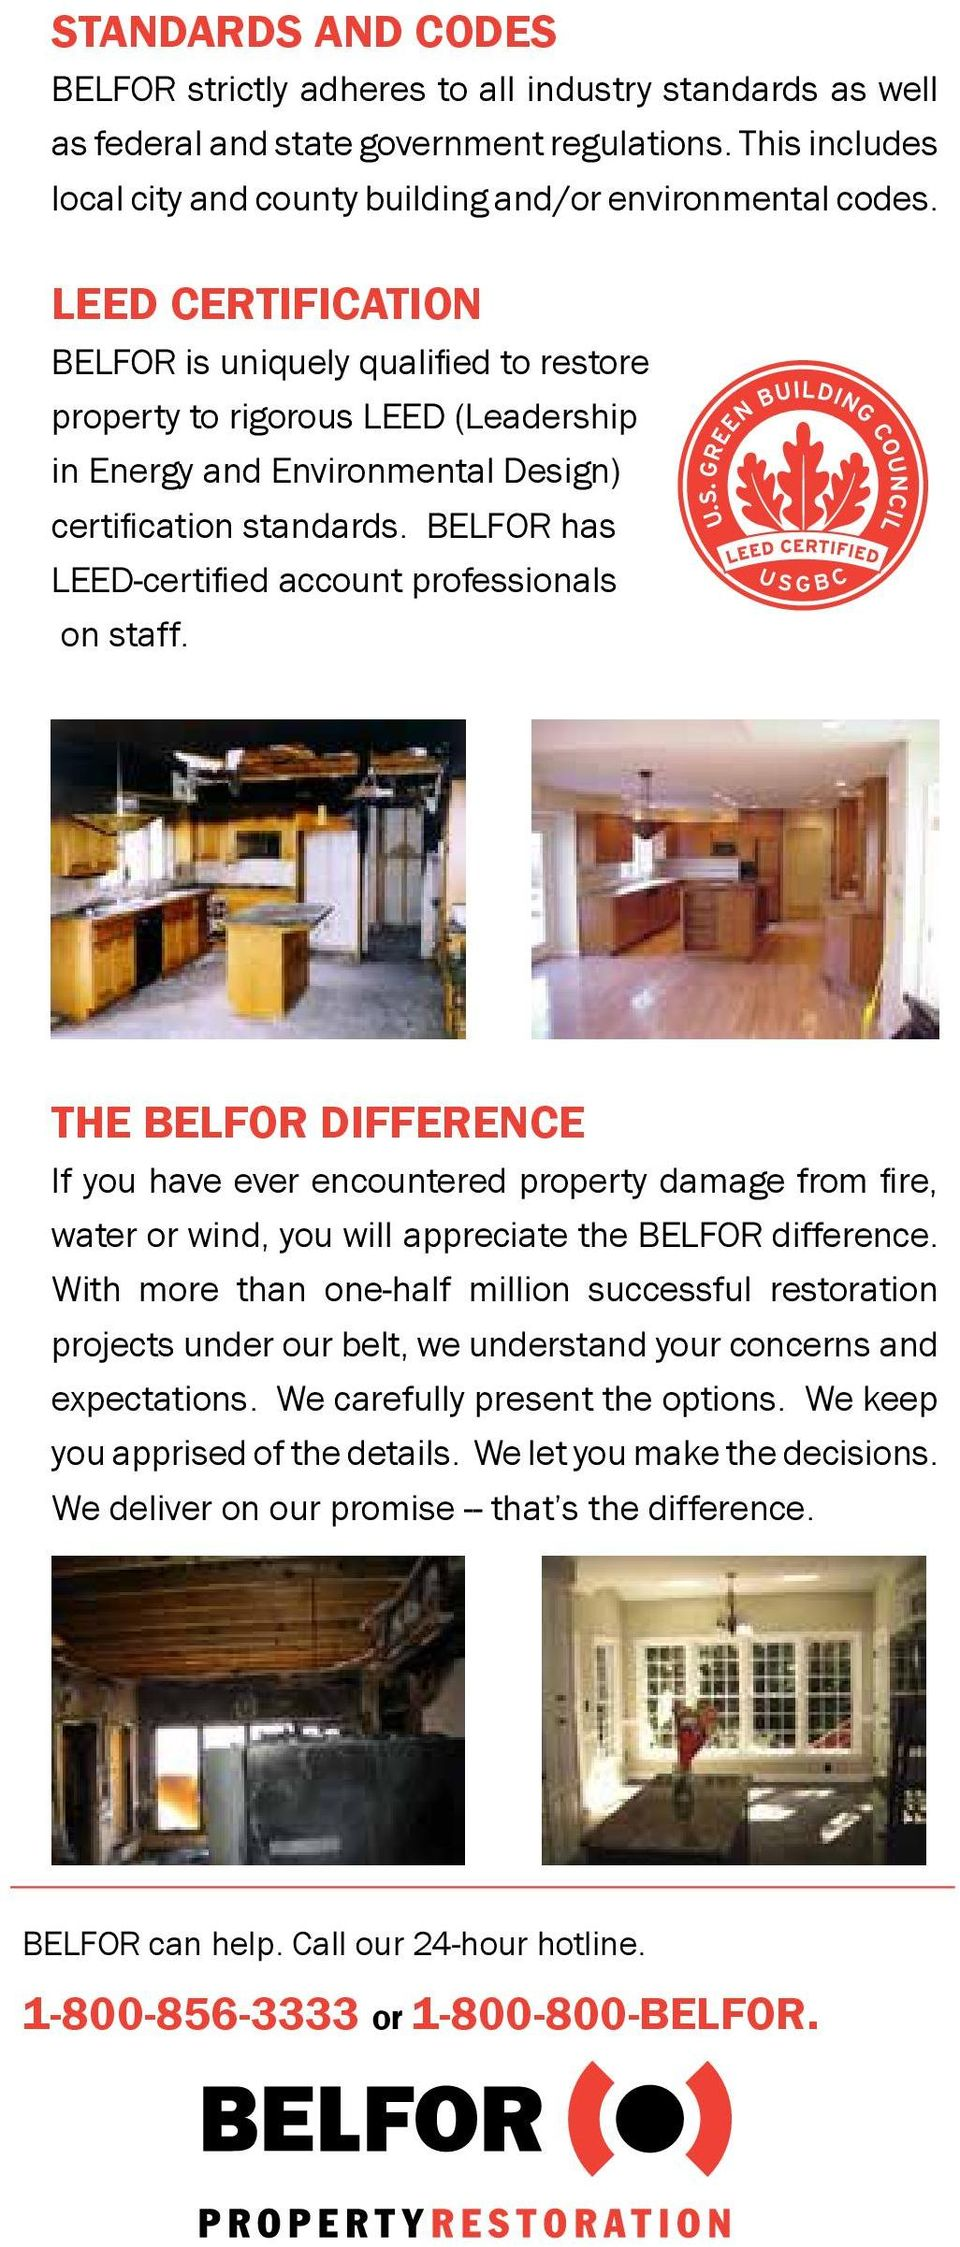 BELFOR has LEED-certified account professionals on staff. THE BELFOR DIFFERENCE If you have ever encountered property damage from fire, water or wind, you will appreciate the BELFOR difference.